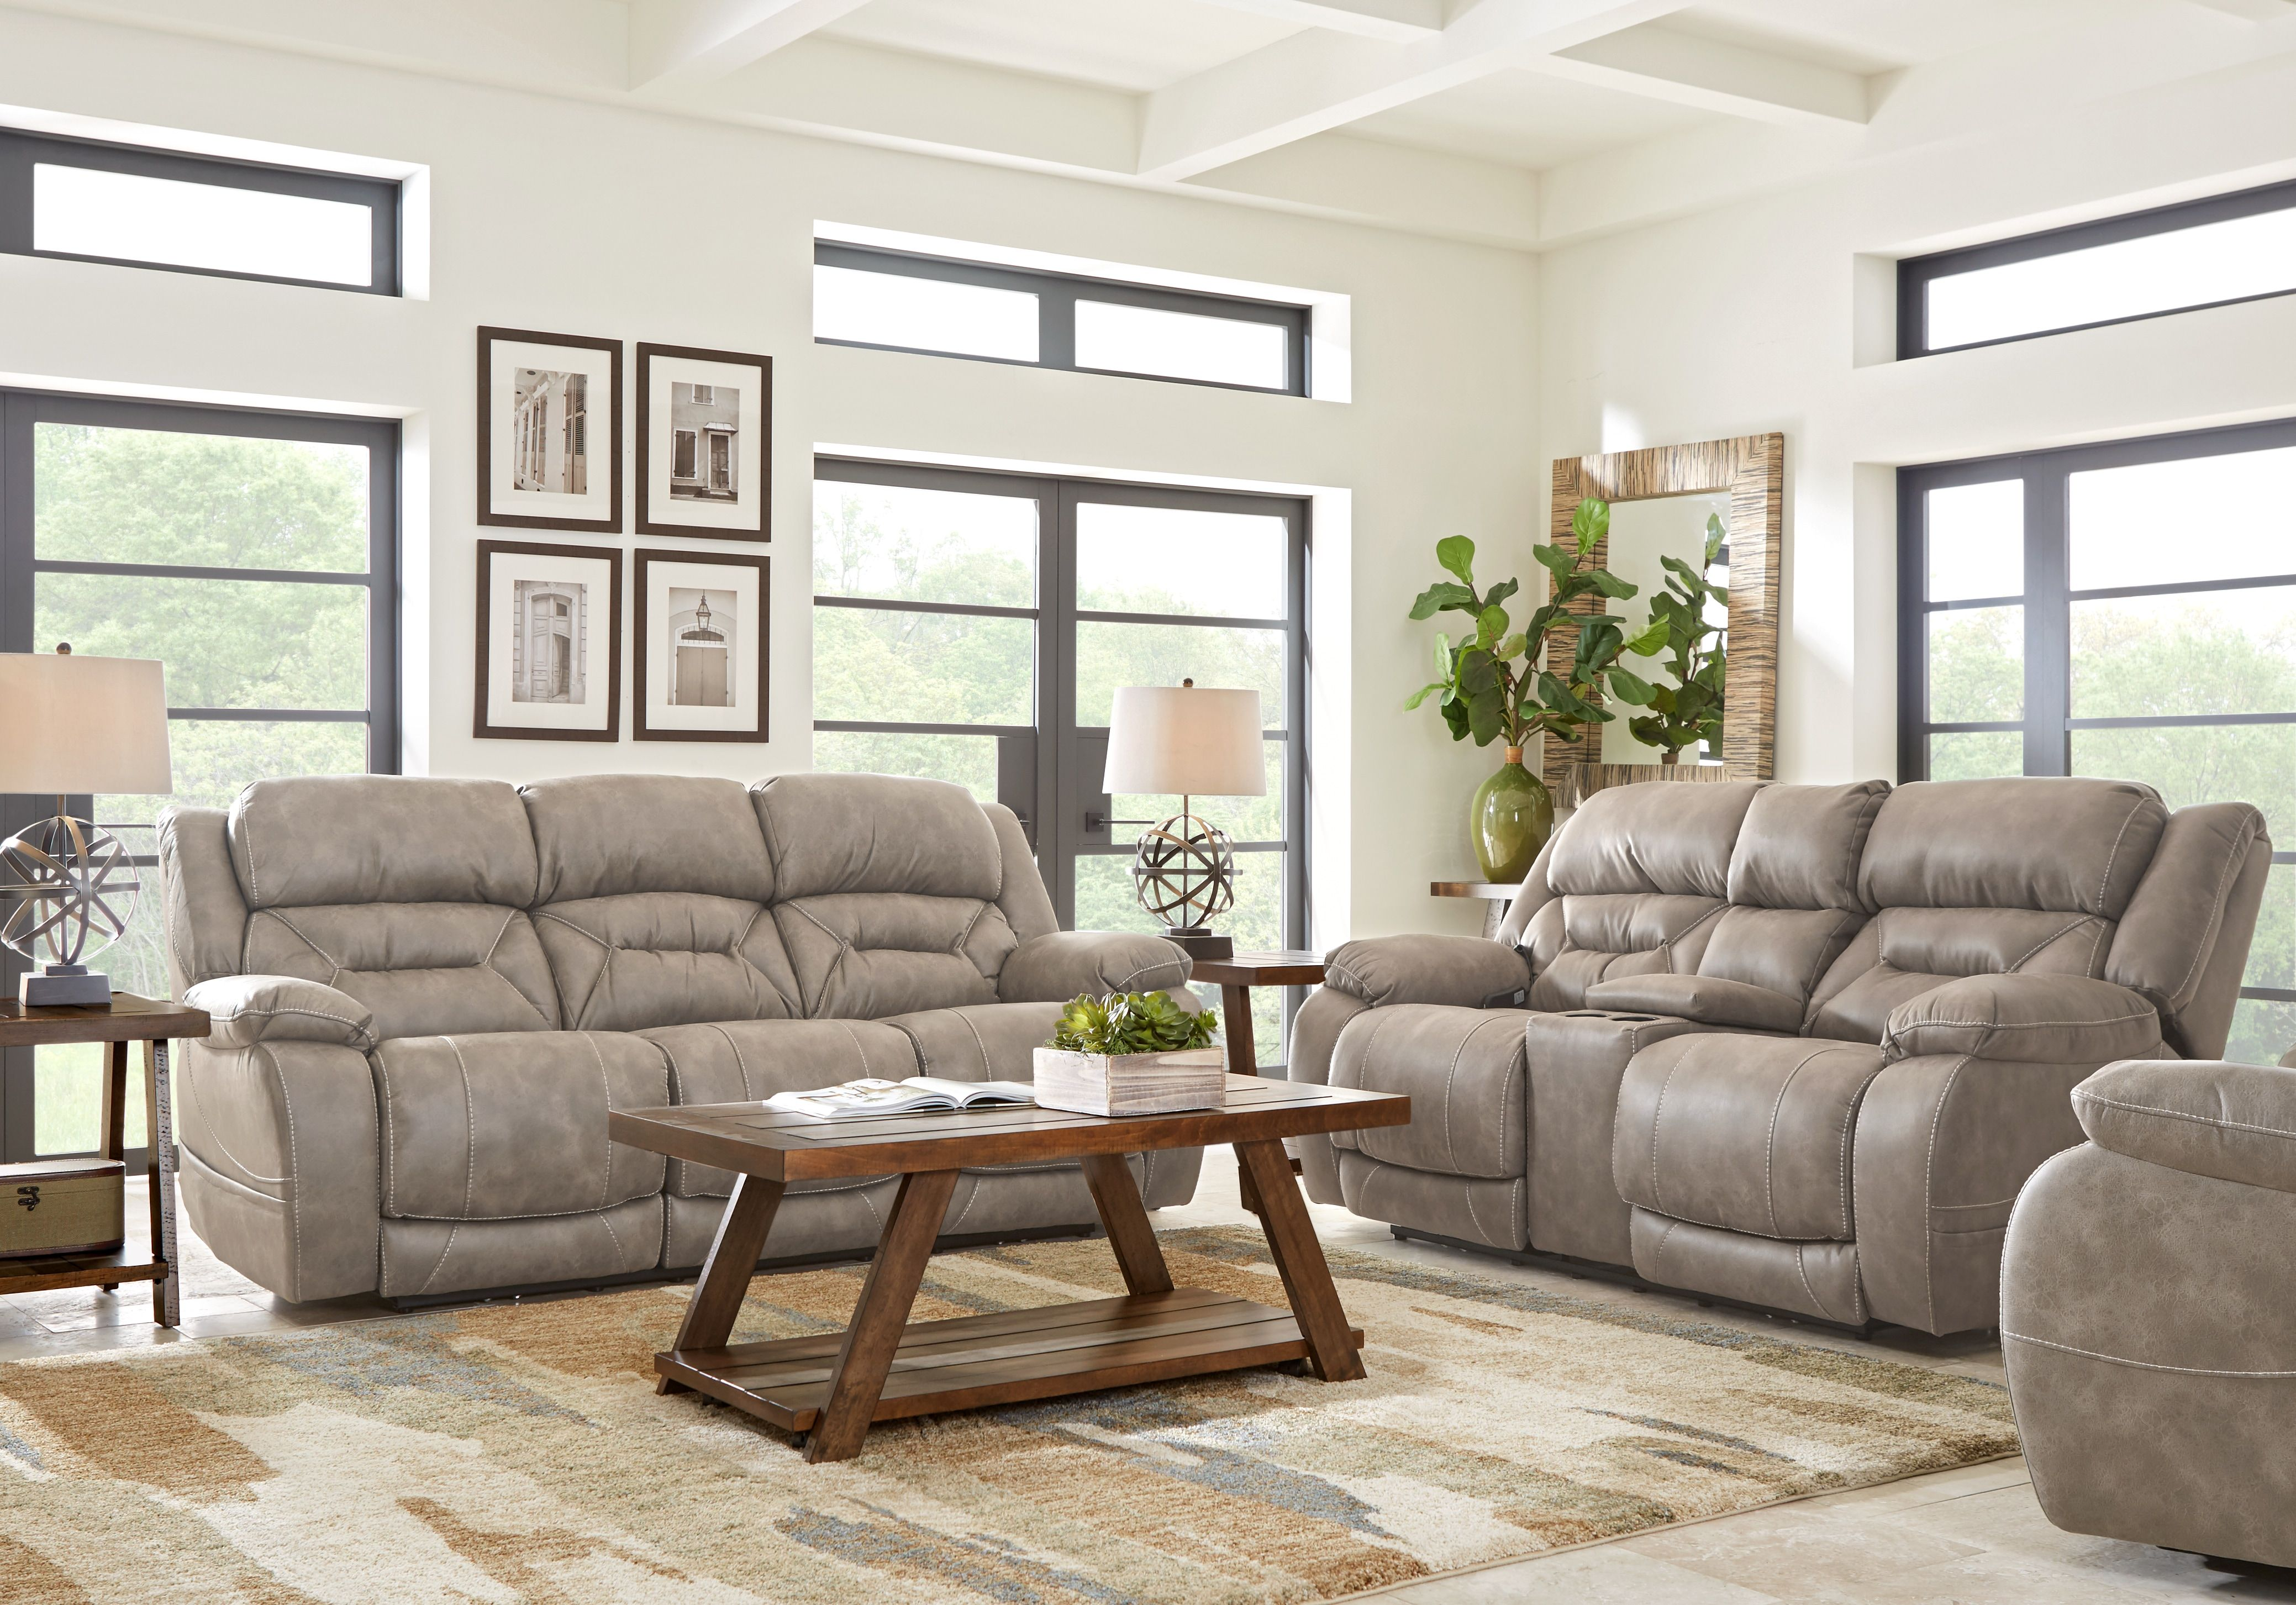 Griffin Valley Taupe 2 Pc Power Plus Reclining Living Room Reclining Sofa Living Room Quality Living Room Furniture Living Room Sets